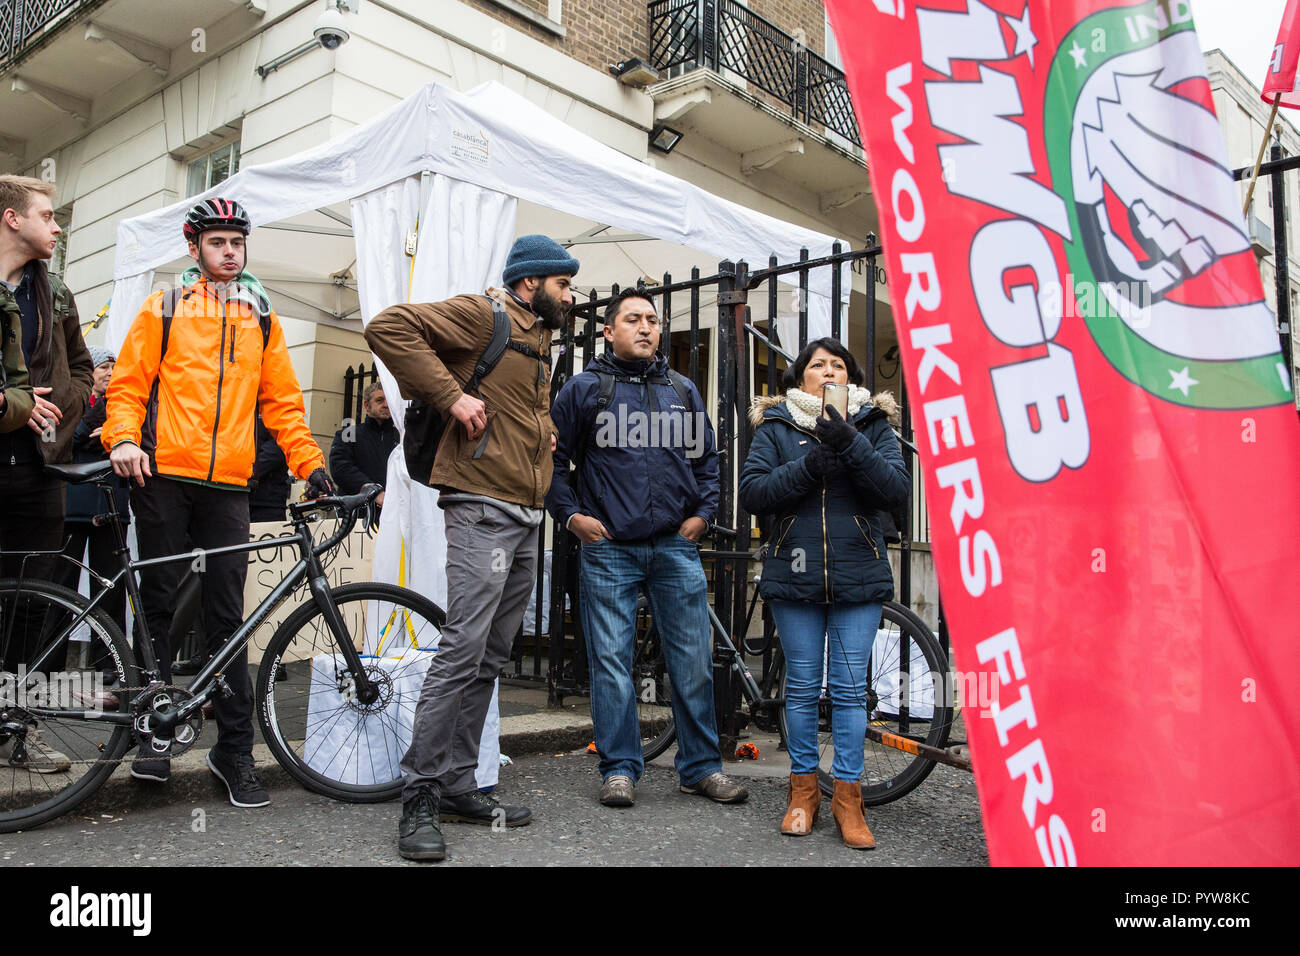 London, UK. 30th October, 2018. An Independent Workers of Great Britain (IWGB) trade union member addresses supporters and other fellow precarious workers after a march from the offices of Transport for London to the University of London via the Court of Appeal in support of Uber drivers who are seeking employment rights. The Court of Appeal will today hear an appeal by Uber against a ruling that its drivers are employees rather than self-employed workers. Credit: Mark Kerrison/Alamy Live News - Stock Image